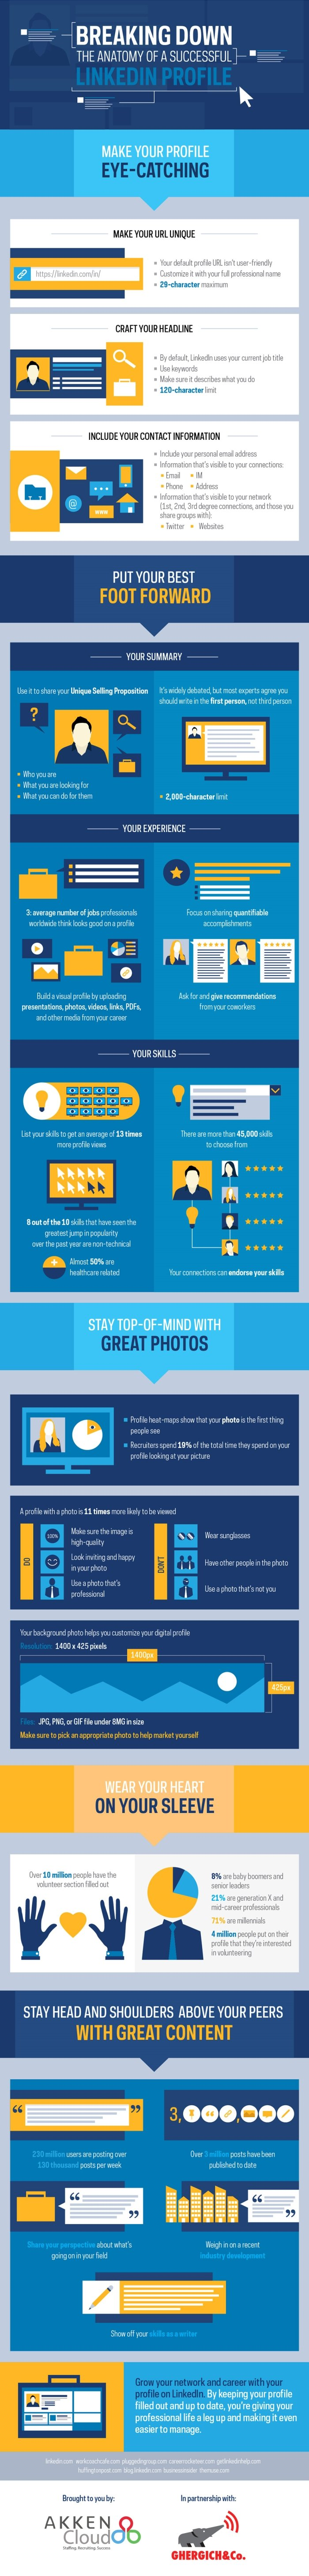 Breaking Down the Anatomy of  a Successful LinkedIn Profile